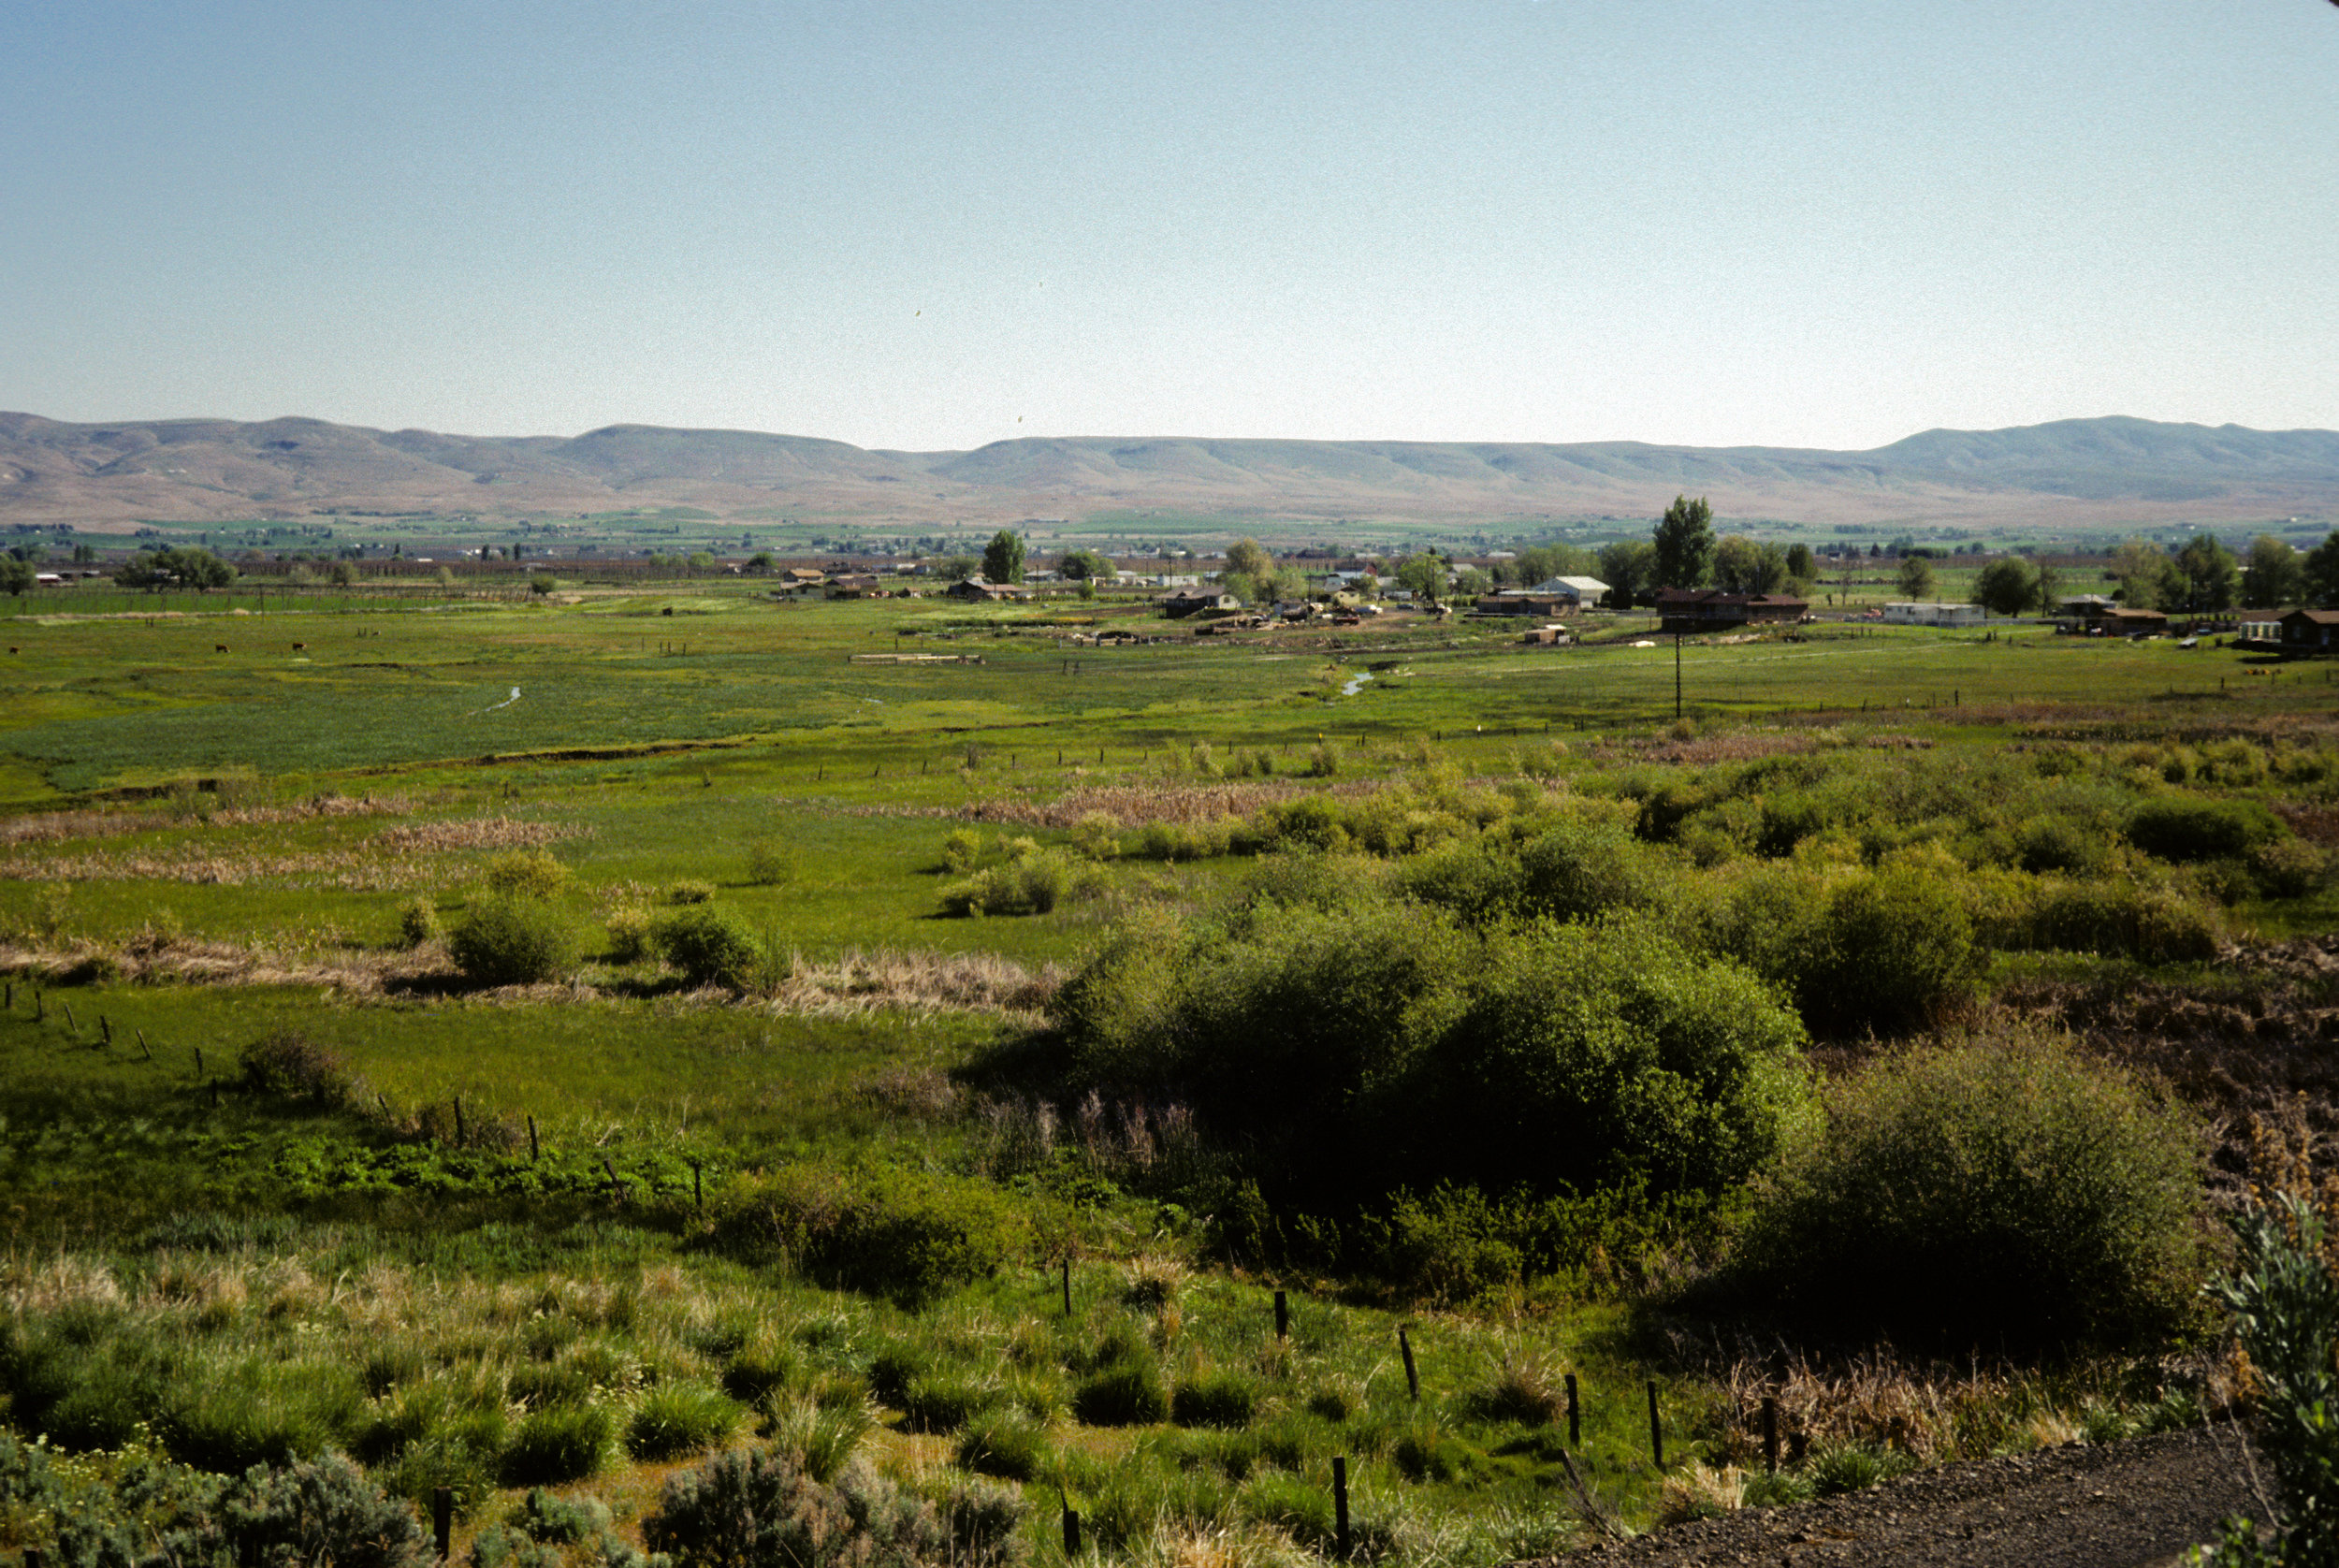 Moxee Bog, pictured here in 1984,sits amid agriculture and public lands in the arid valleys near Yakima, Washington. Photo by the Nature Conservancy.